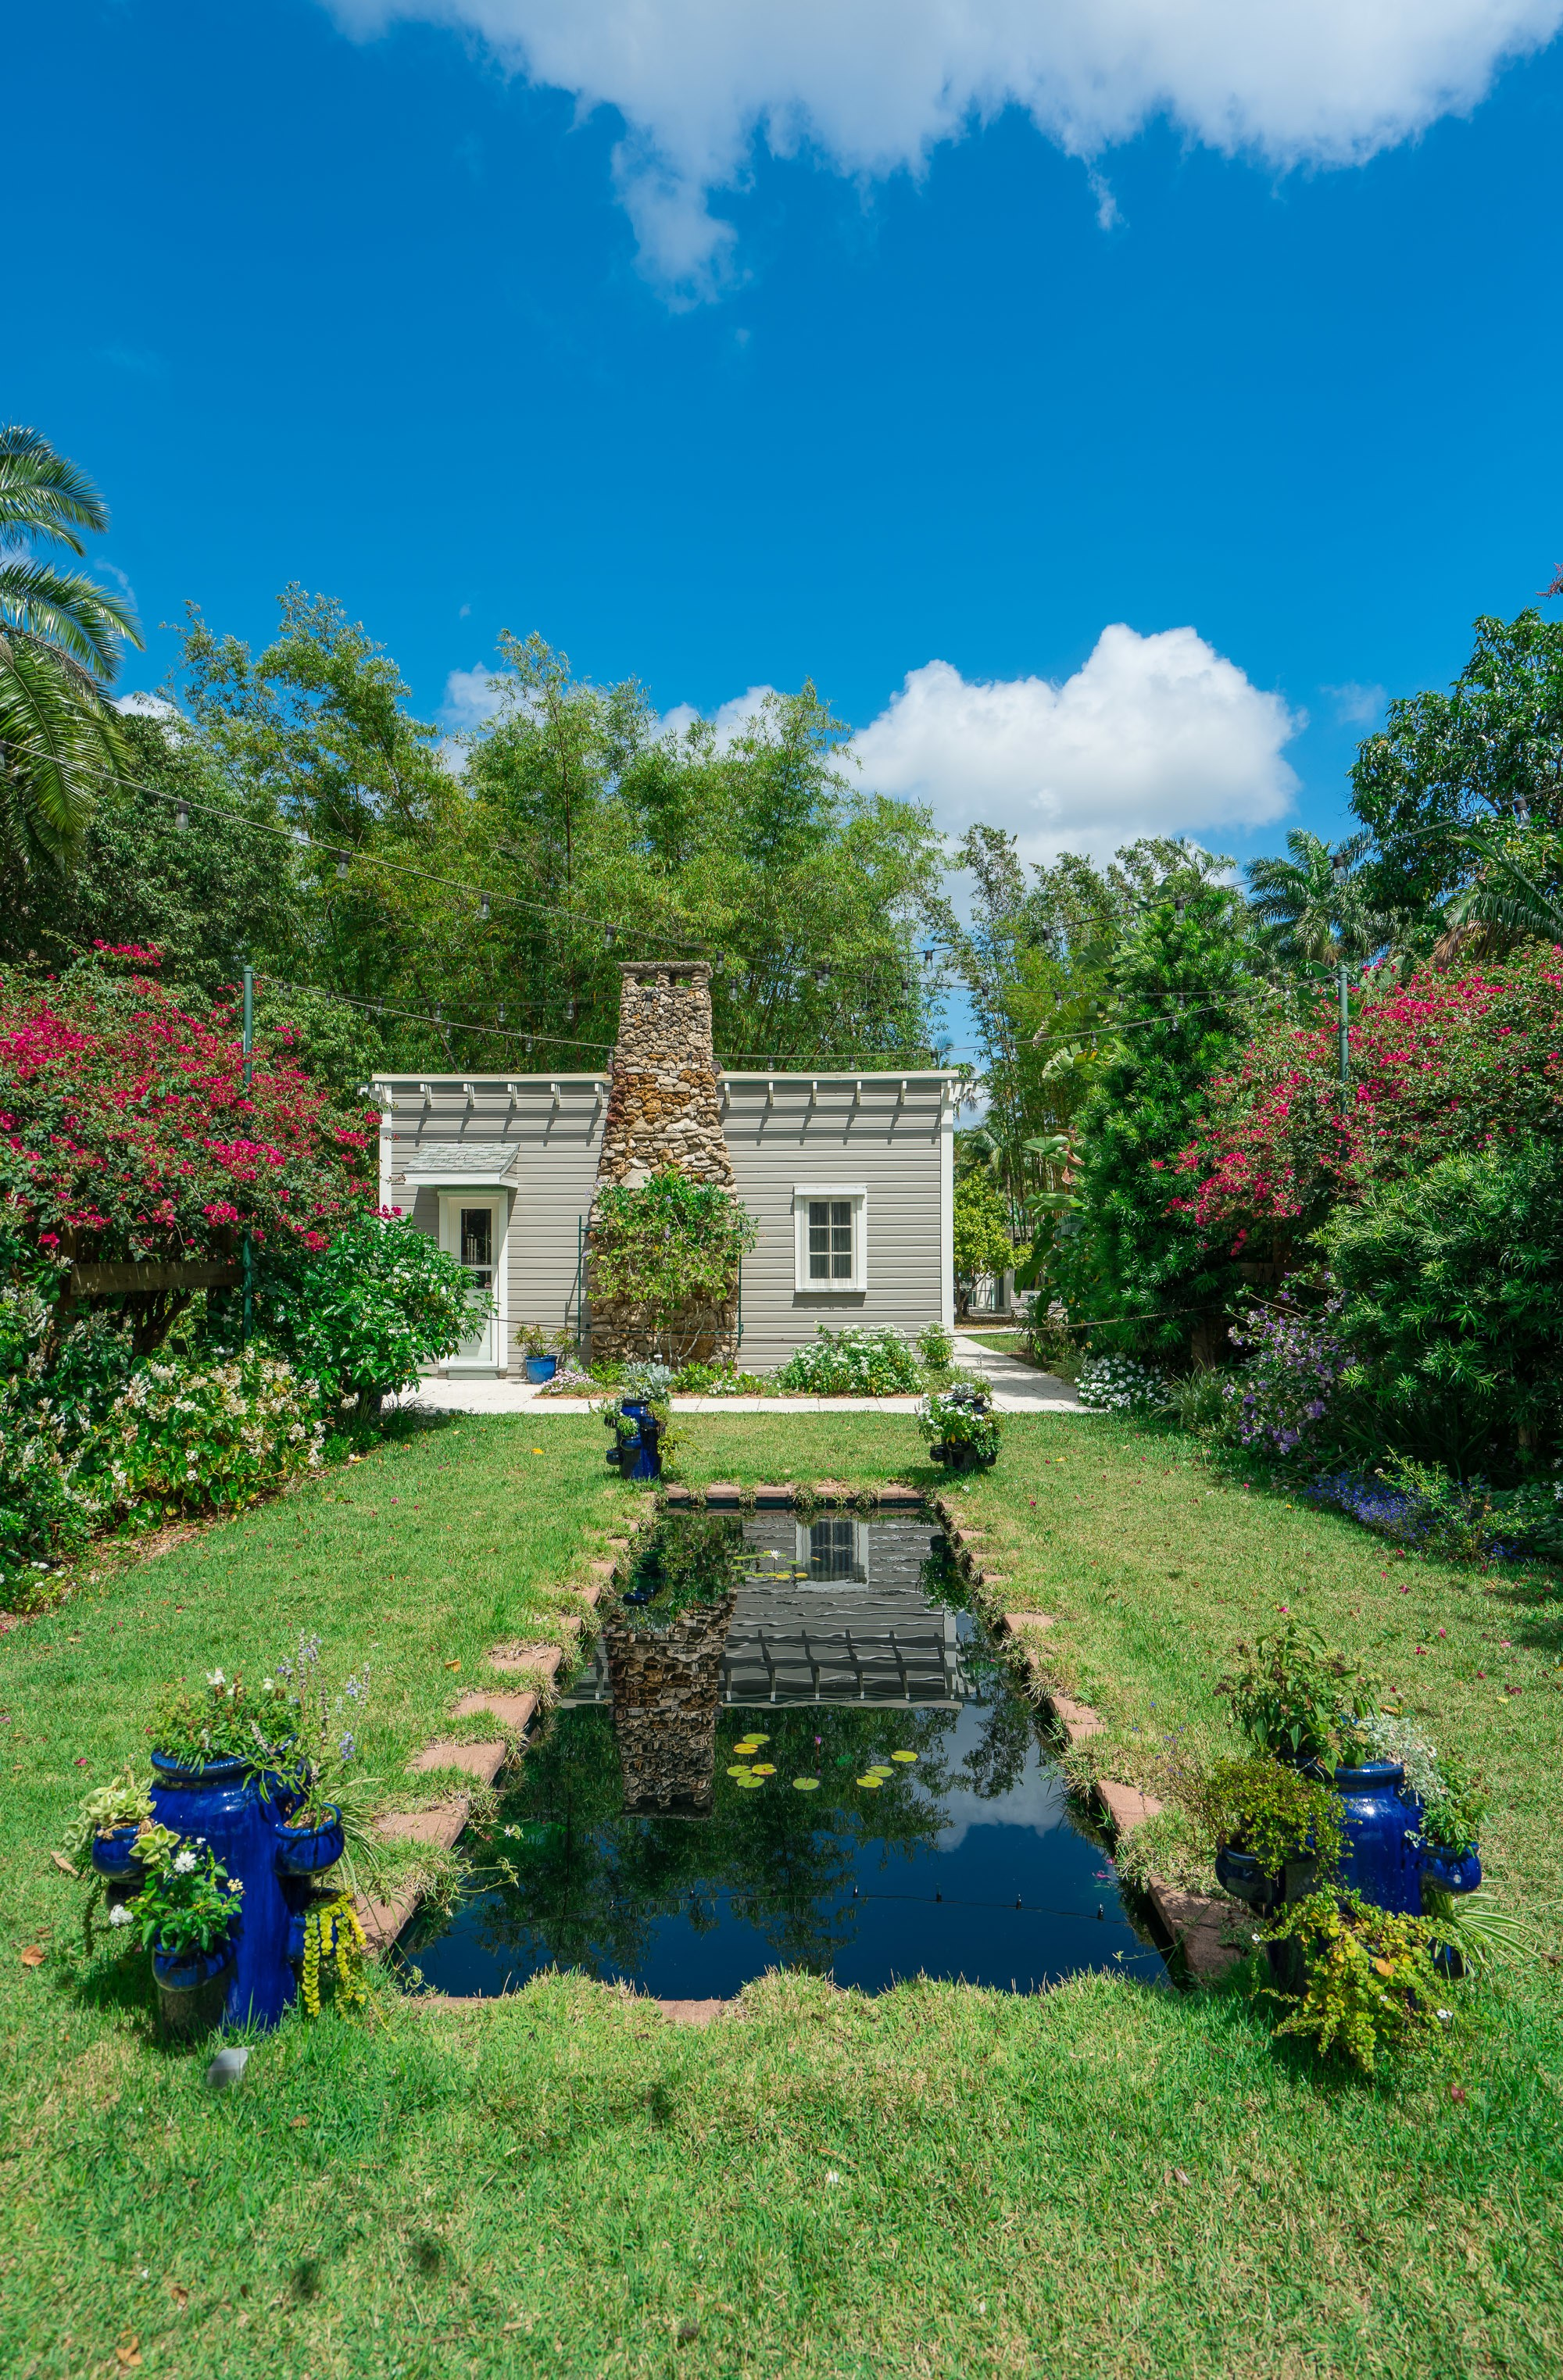 The Moonlight Garden at the Edison & Ford Winter Estates where the moon's reflection can be seen in this pool.